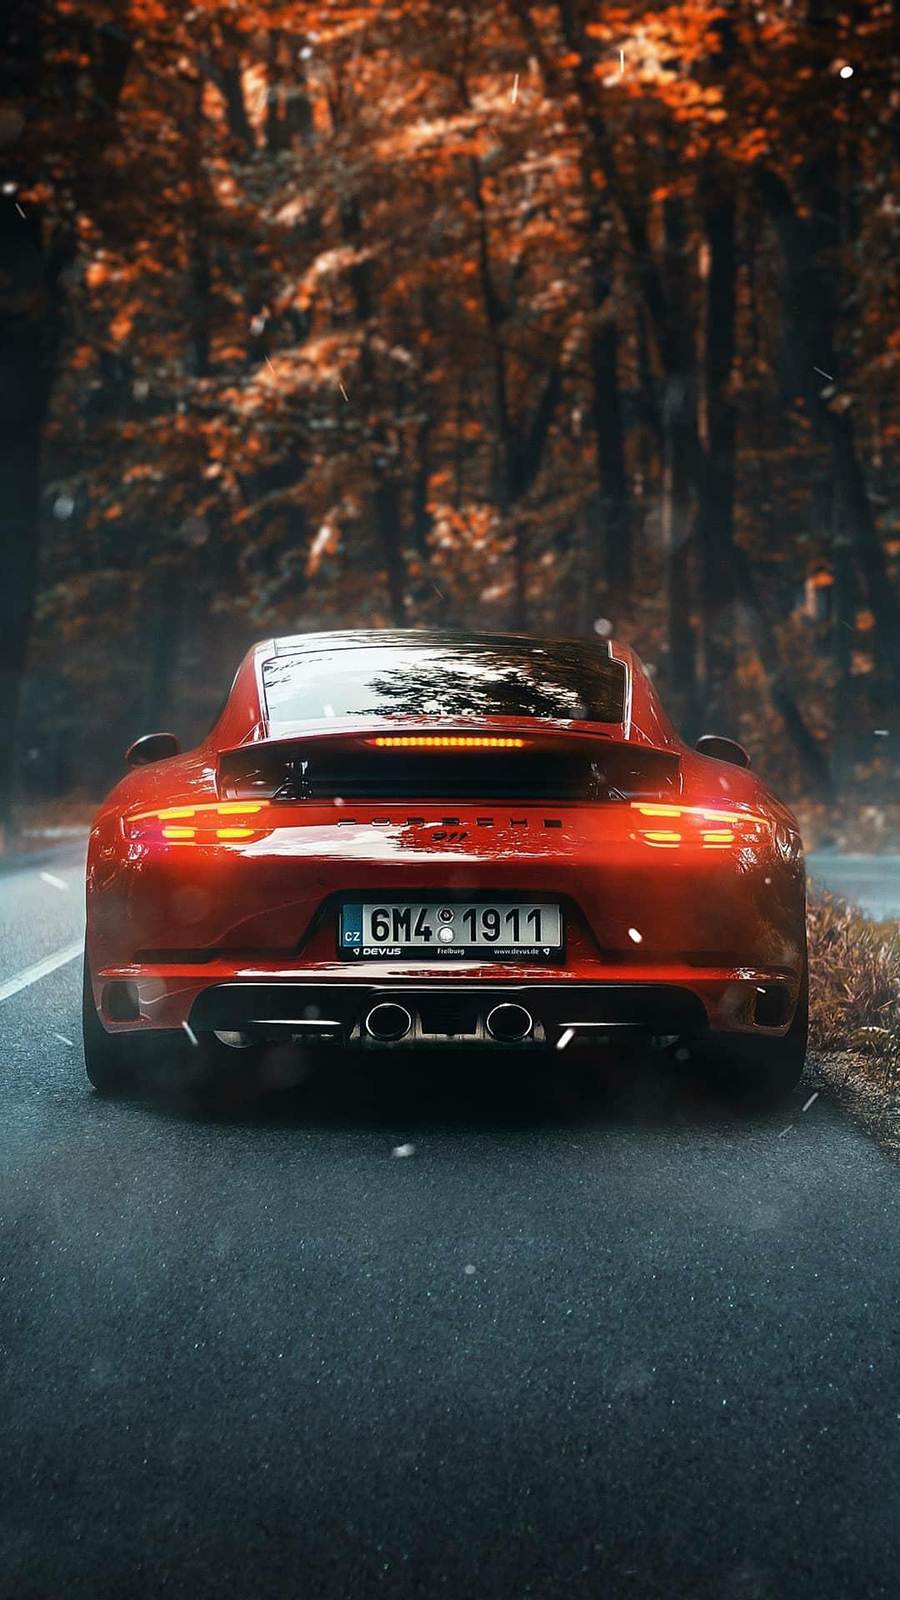 Top Porsche Car HD Wallpapers For Phone Free Download – Best Wallpapers